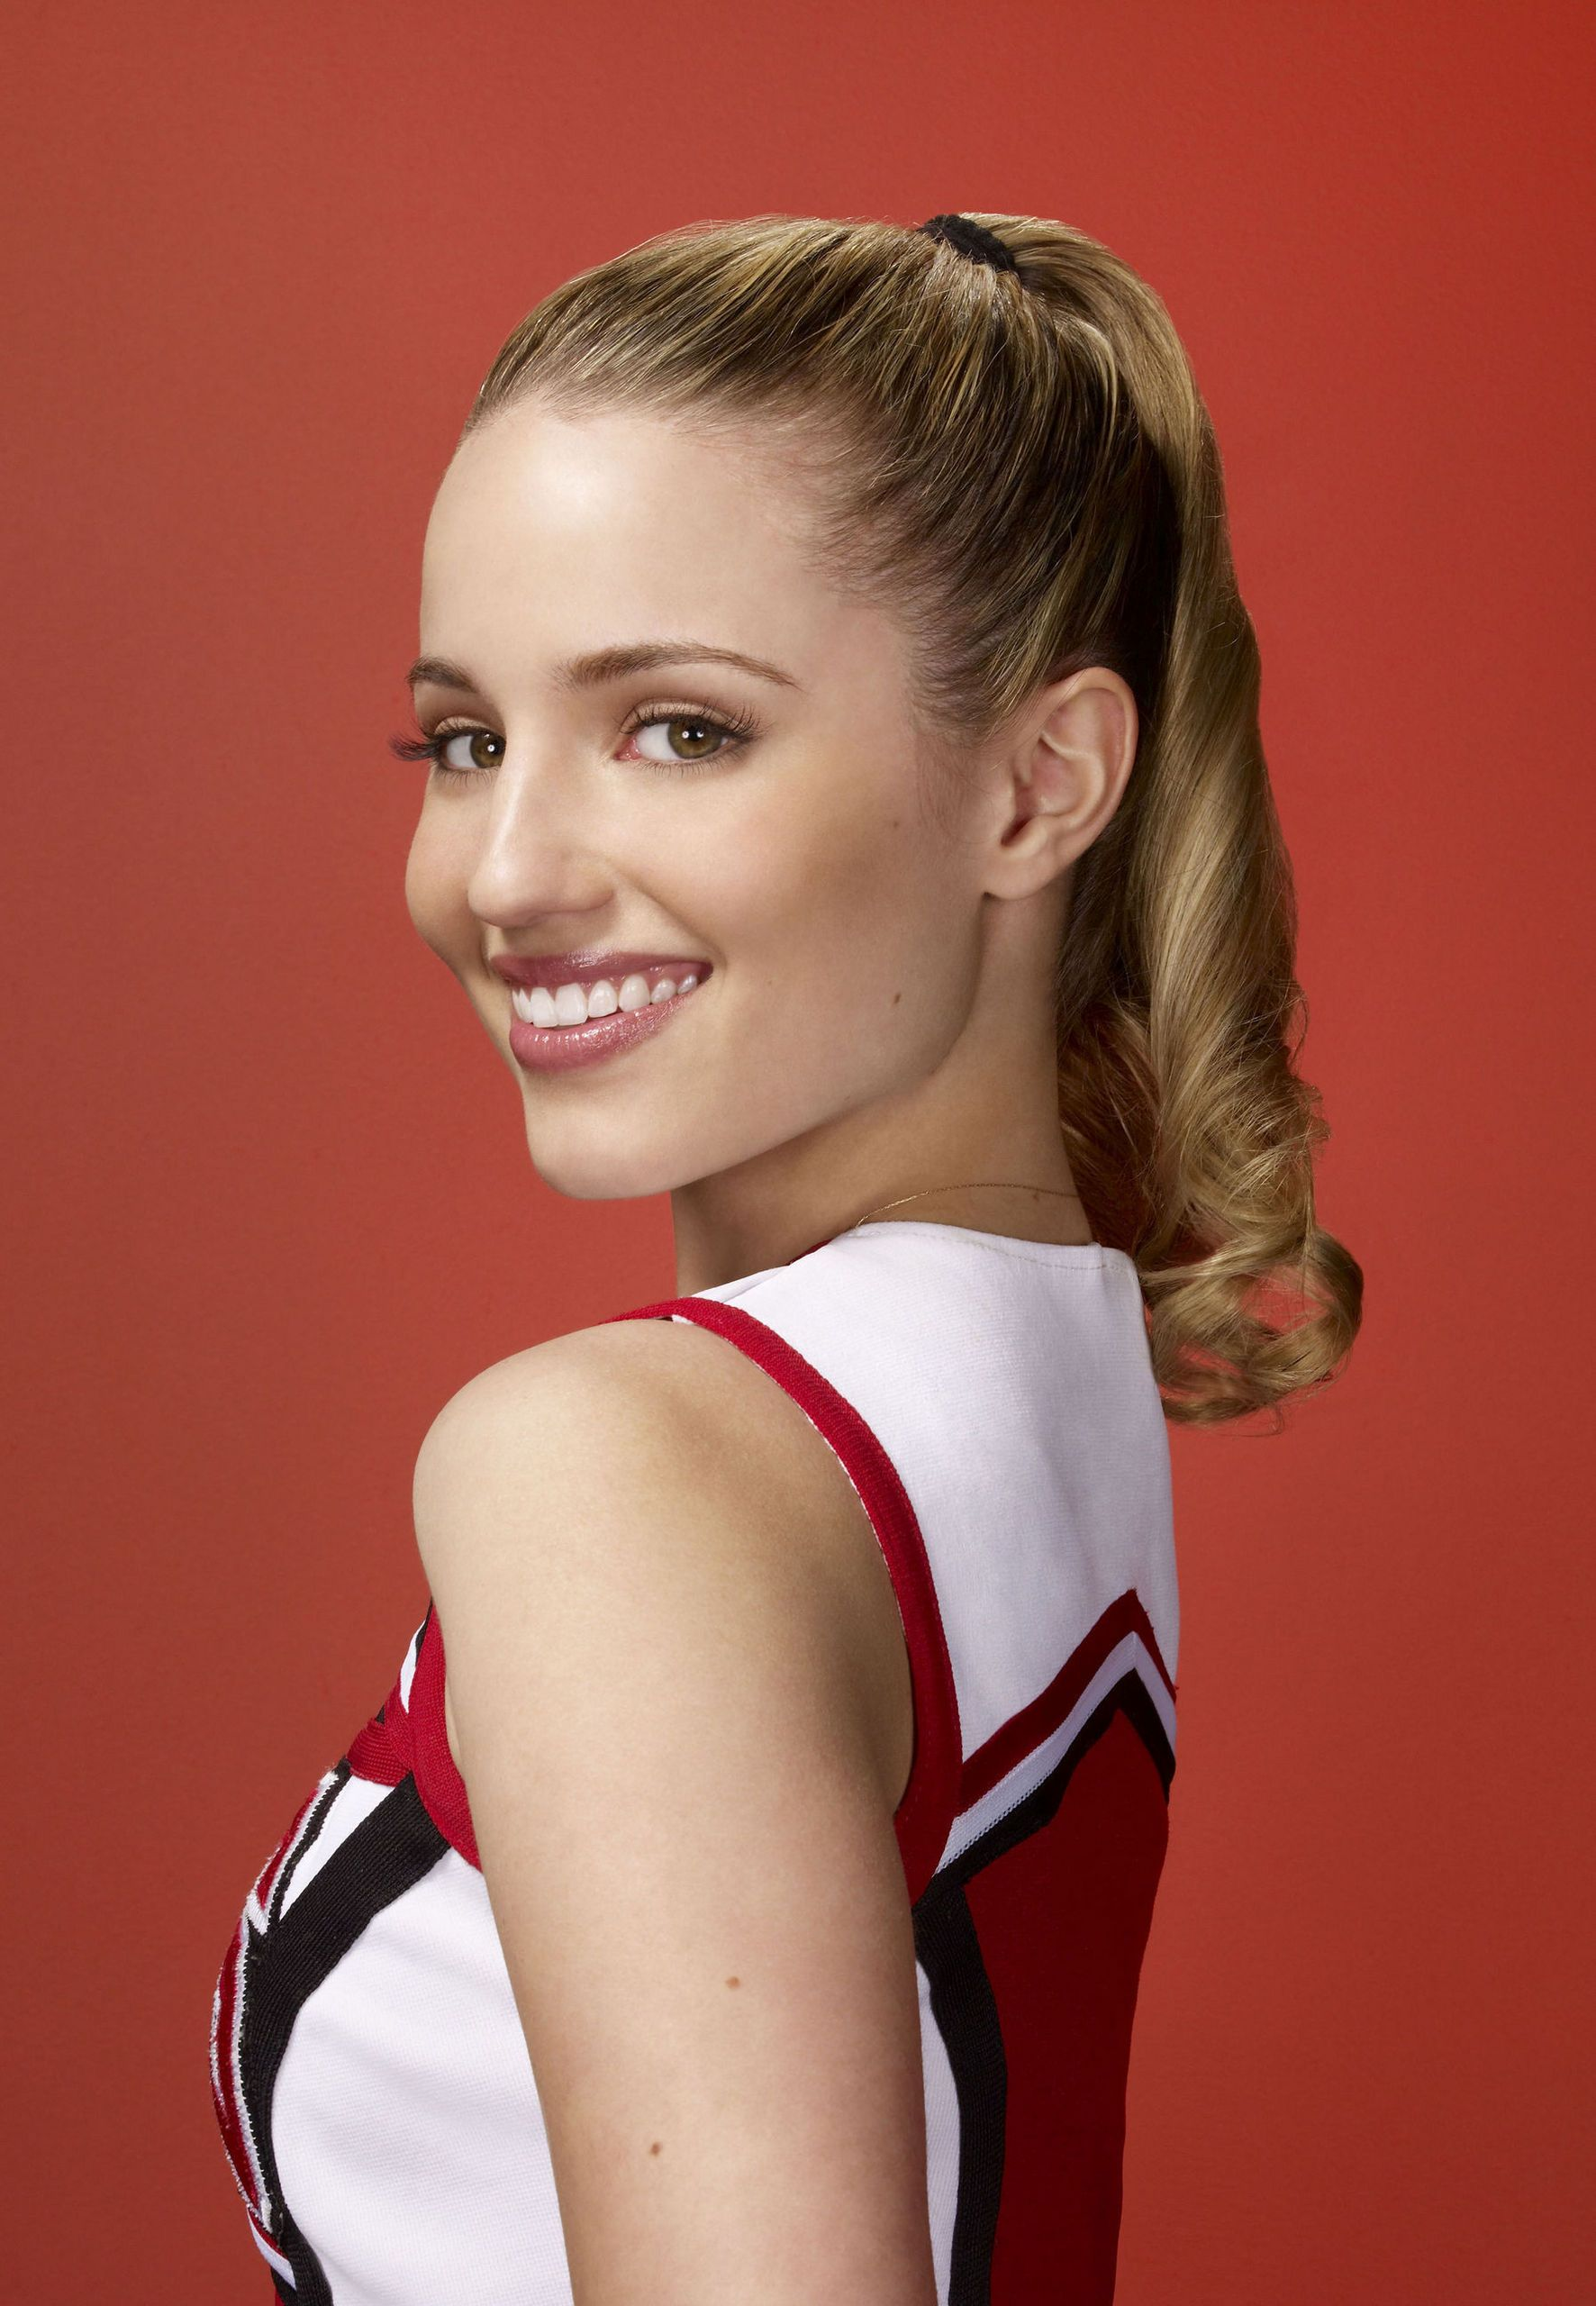 Dianna Agron Wallpapers High Resolution and Quality Download